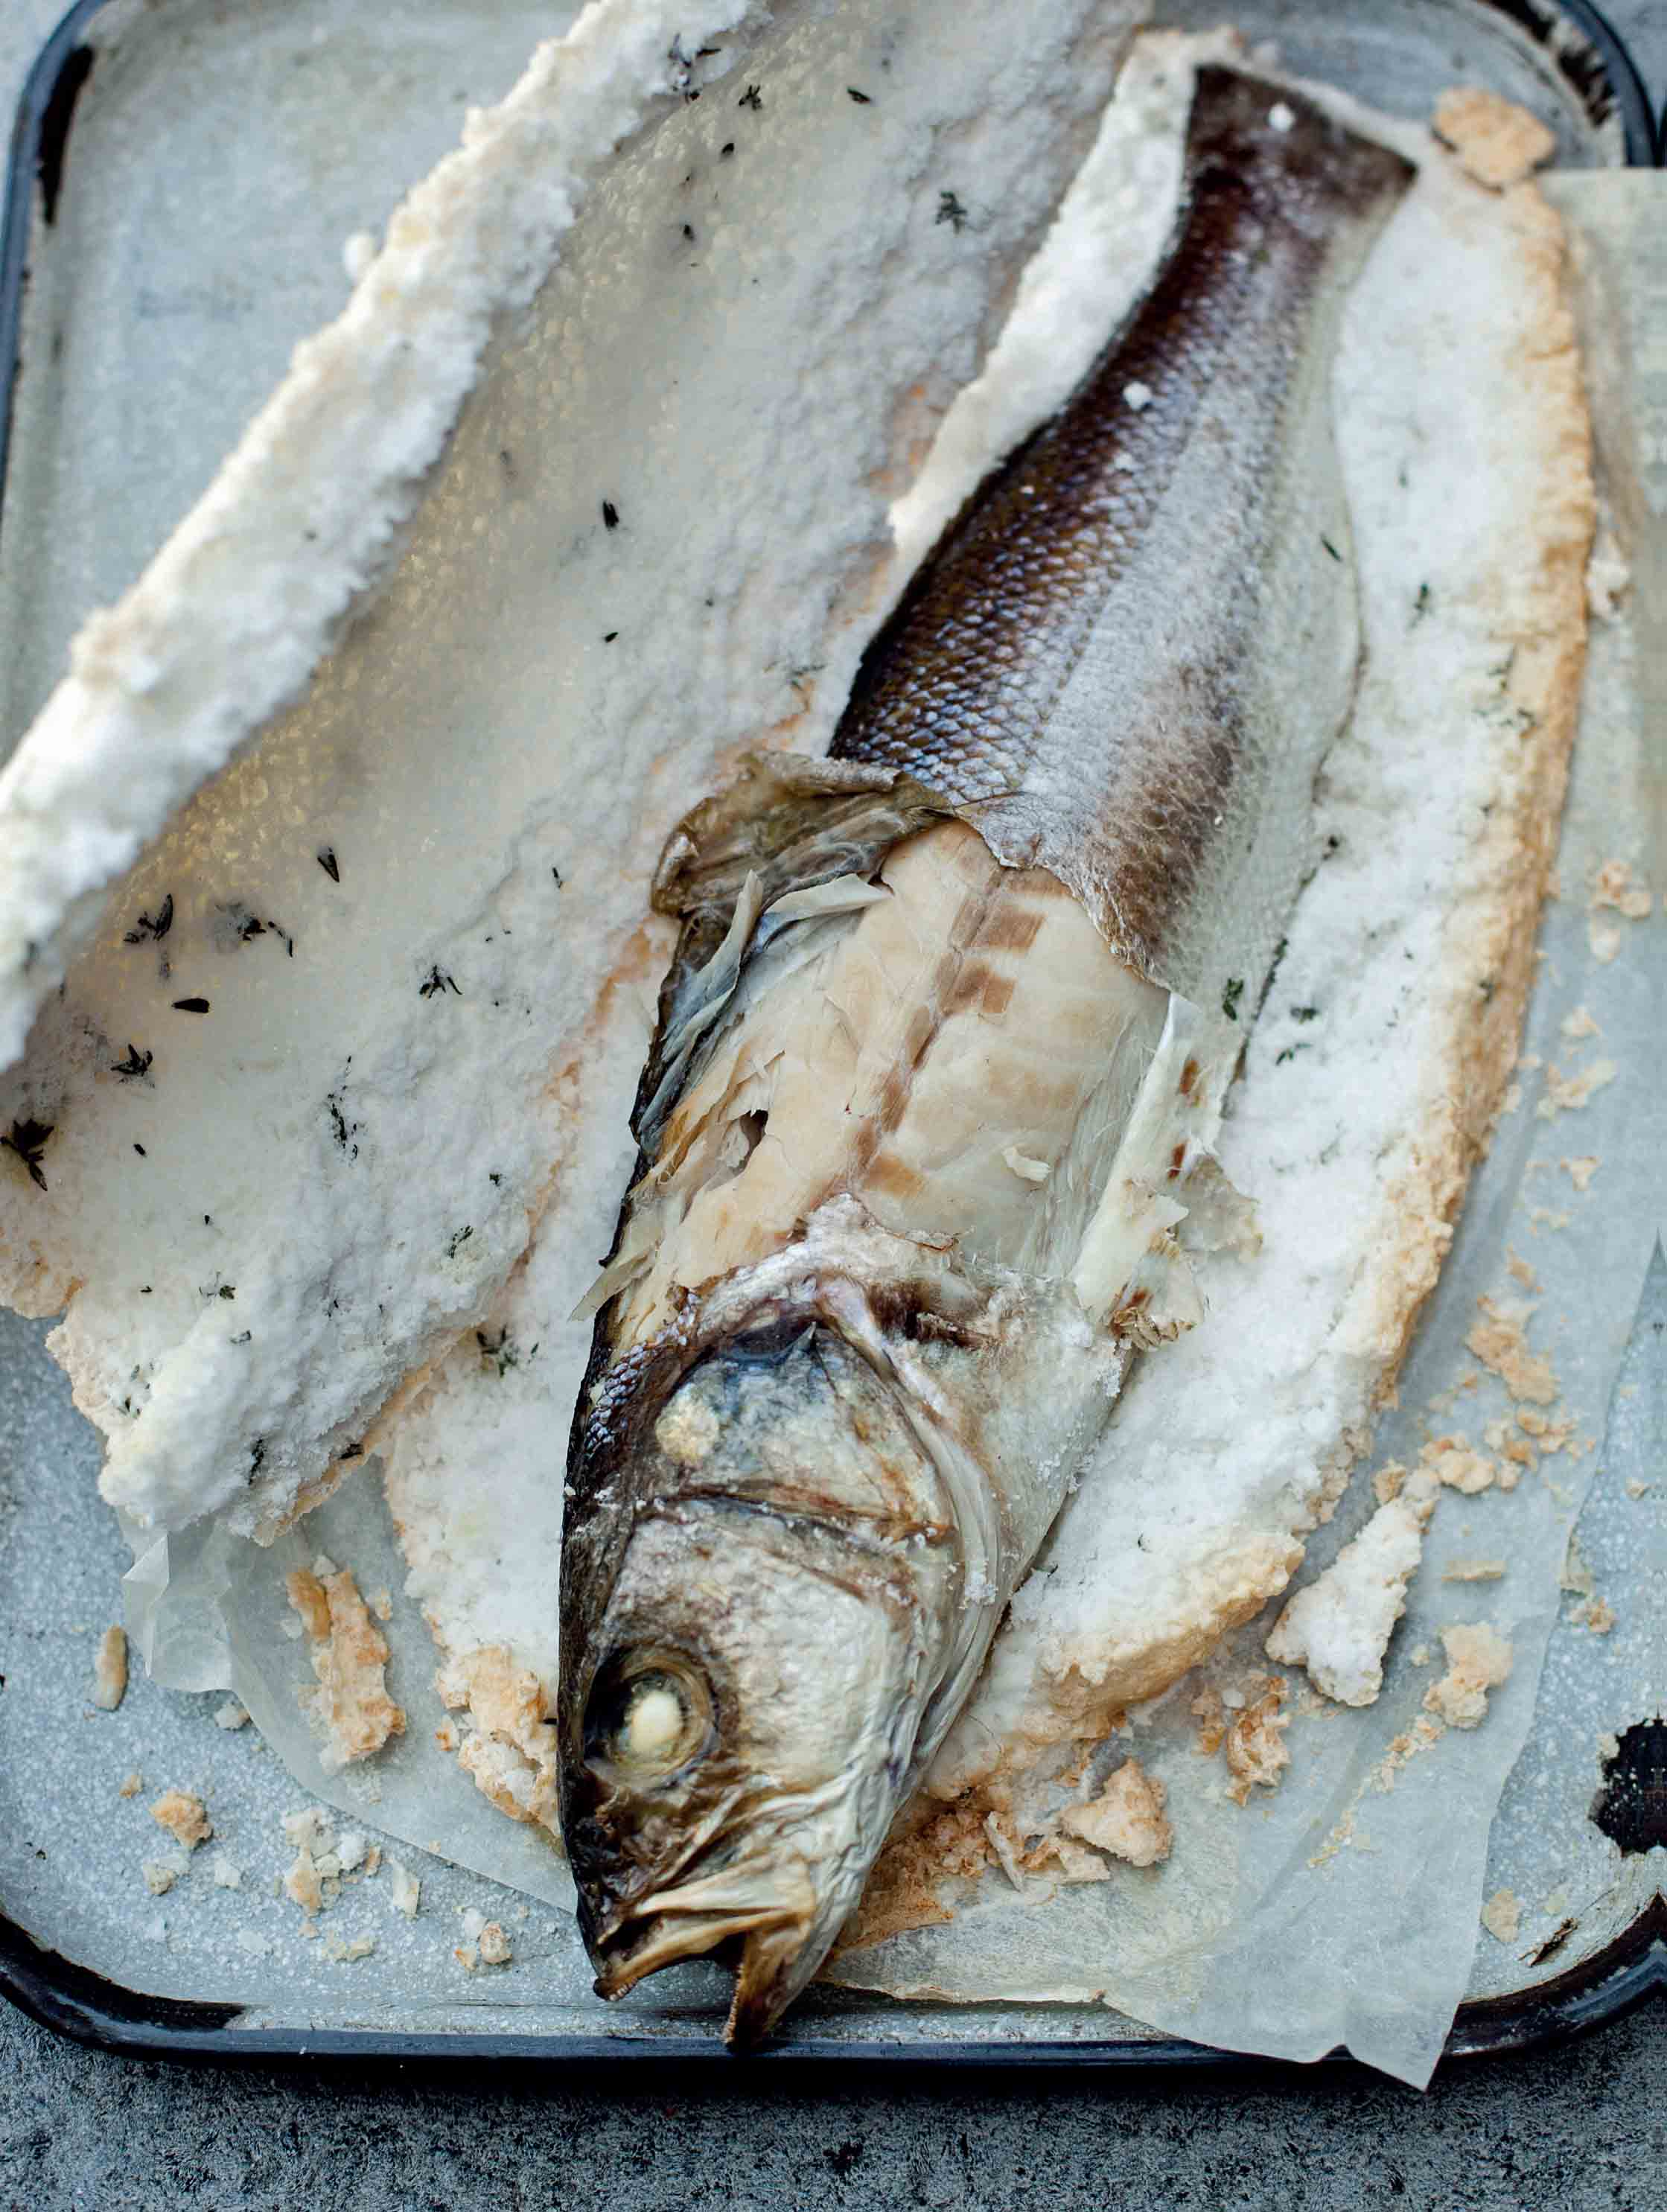 Sea bass baked in a salt crust